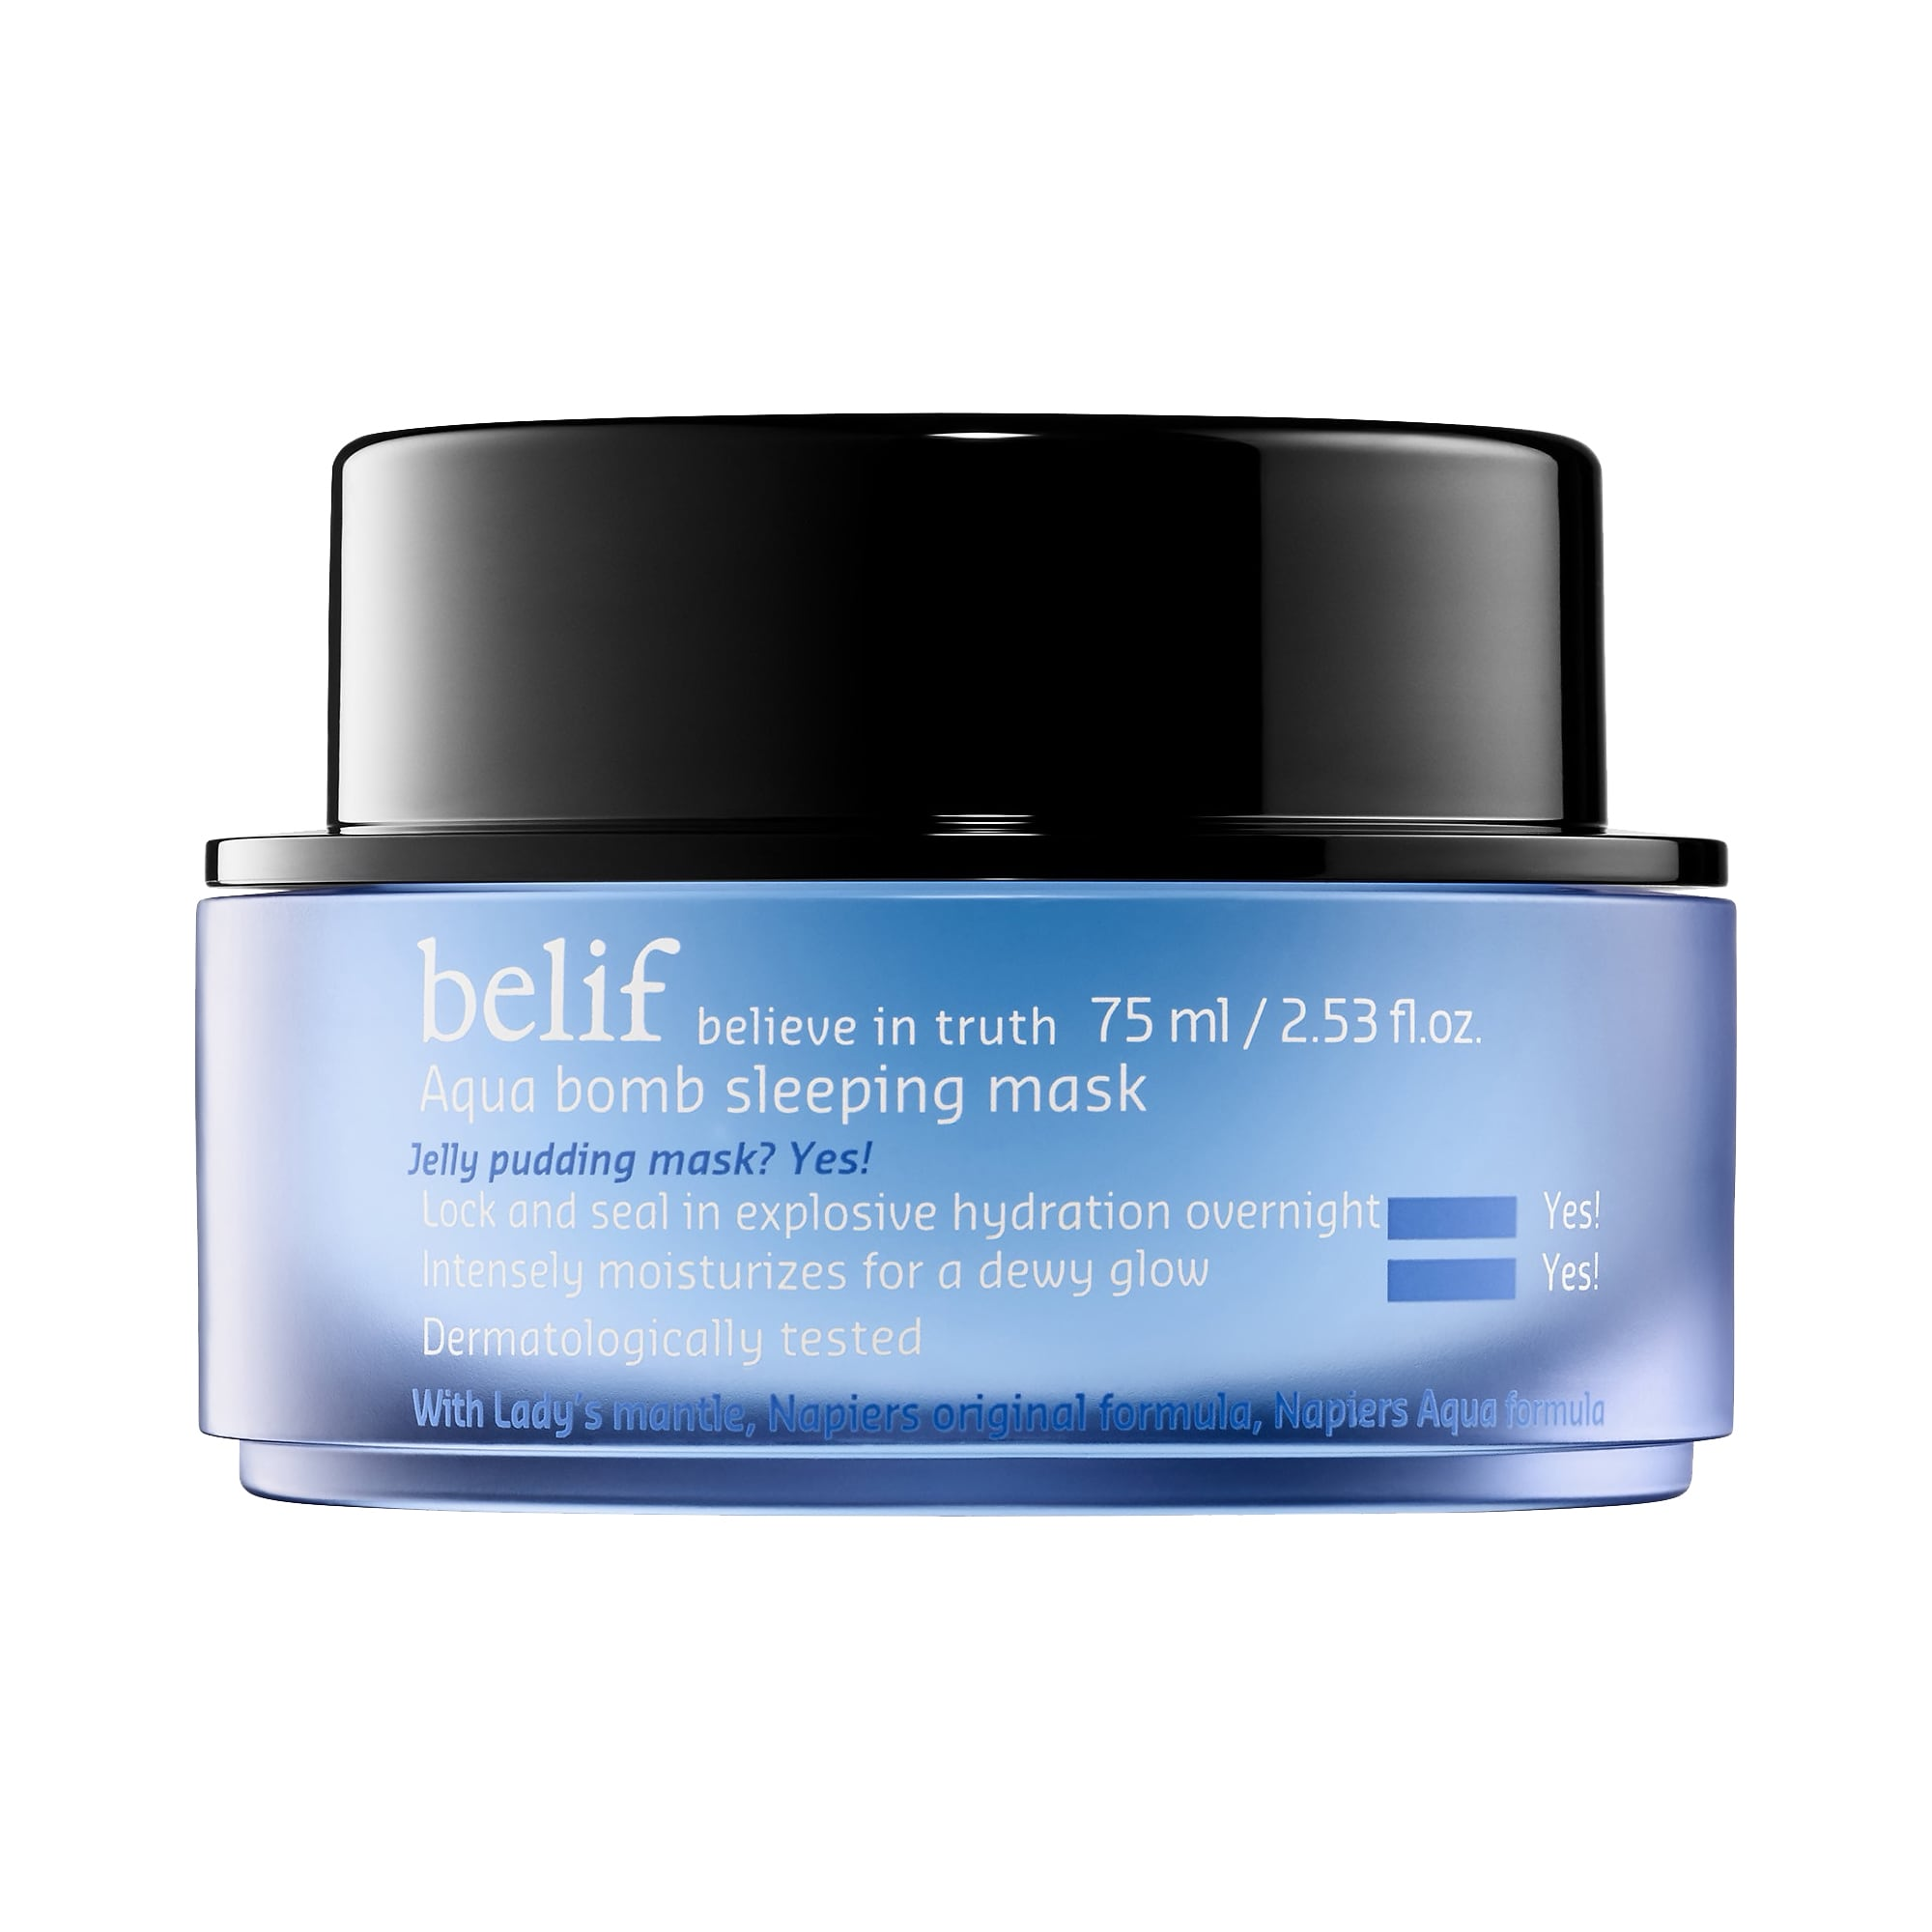 Belif - Aqua Bomb Sleeping Mask